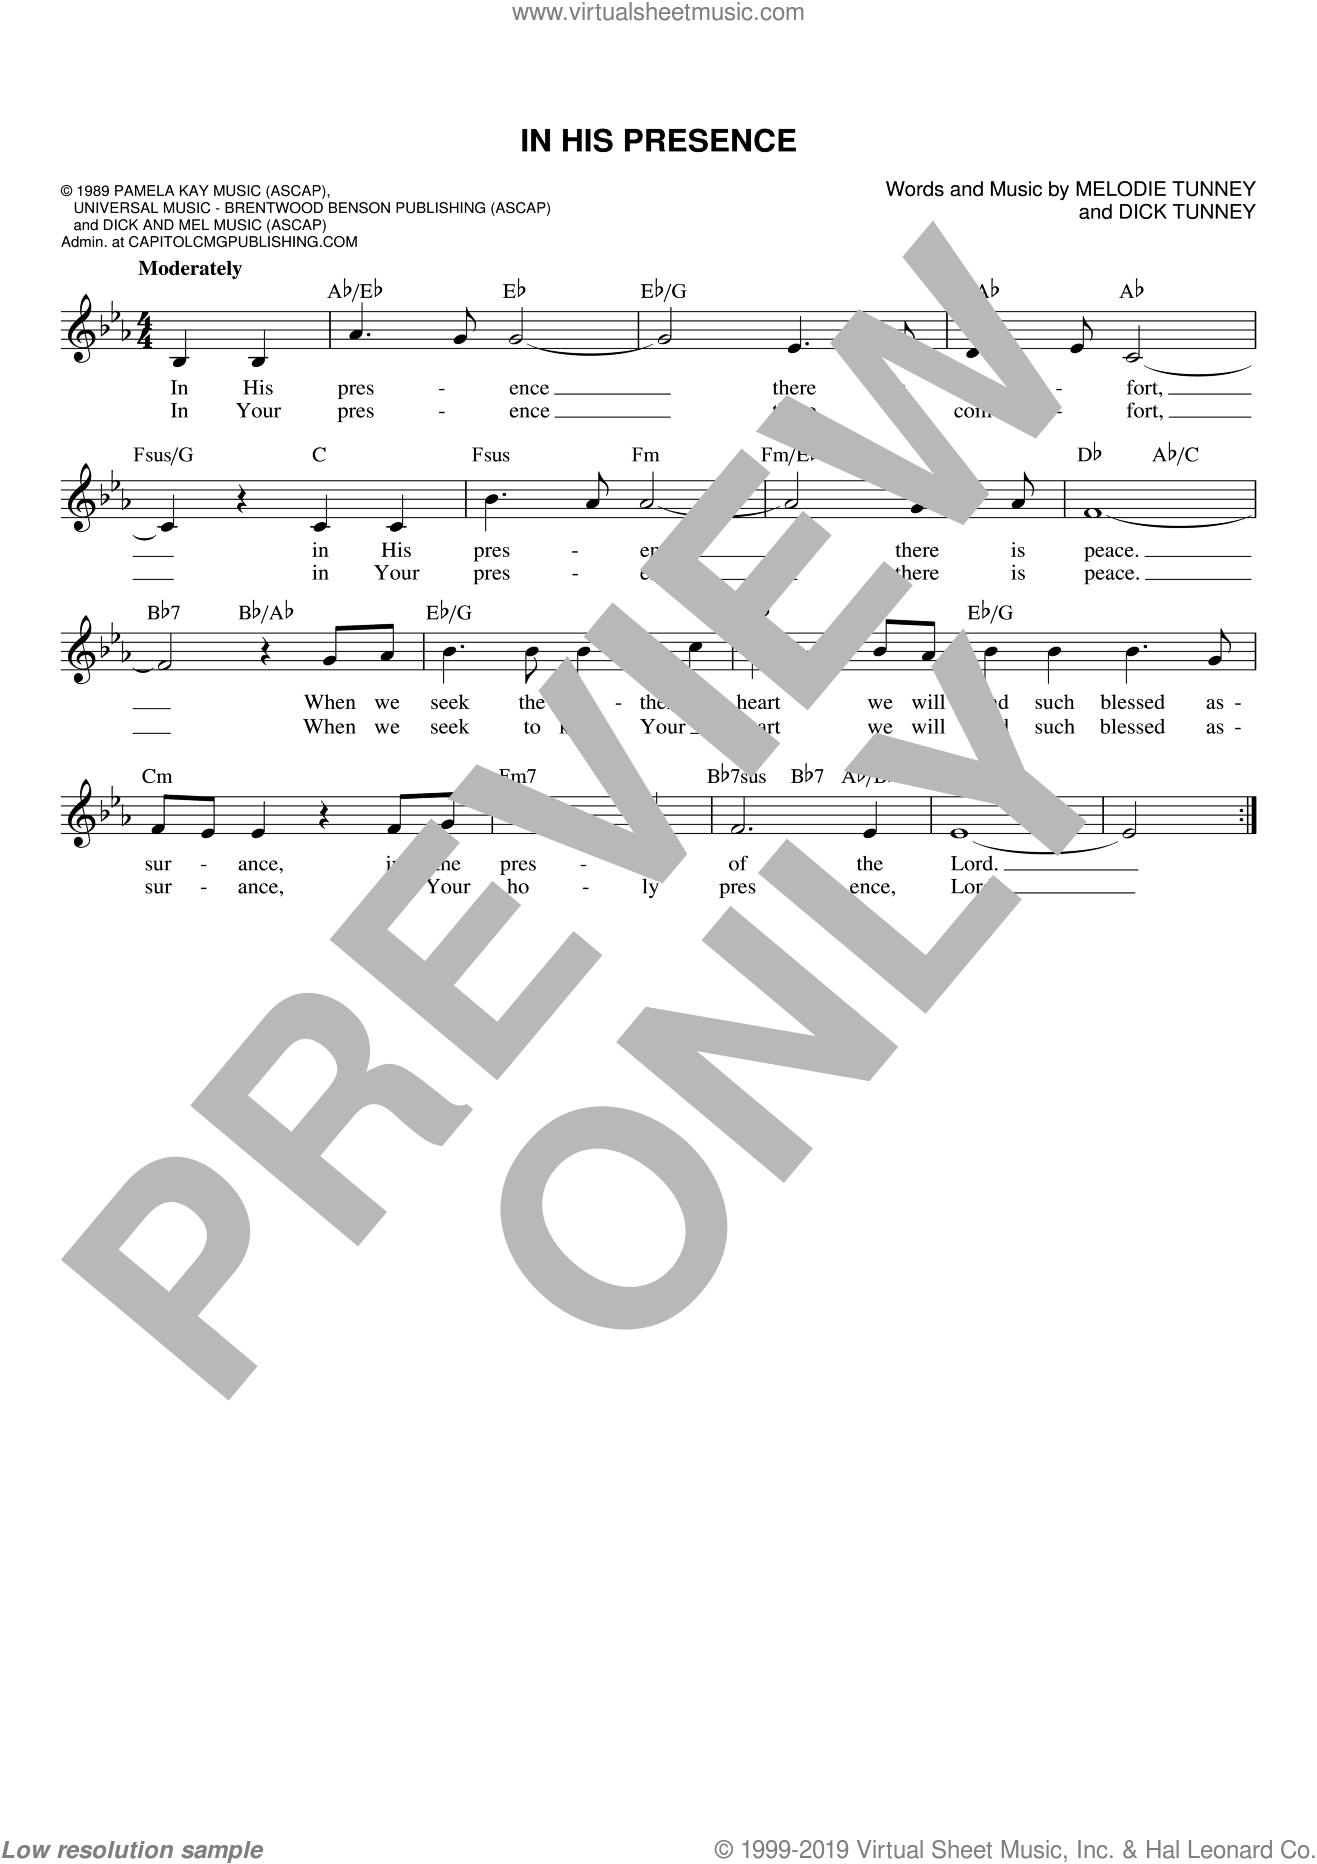 In His Presence sheet music for voice and other instruments (fake book) by Melodie Tunney and Dick Tunney, intermediate voice. Score Image Preview.